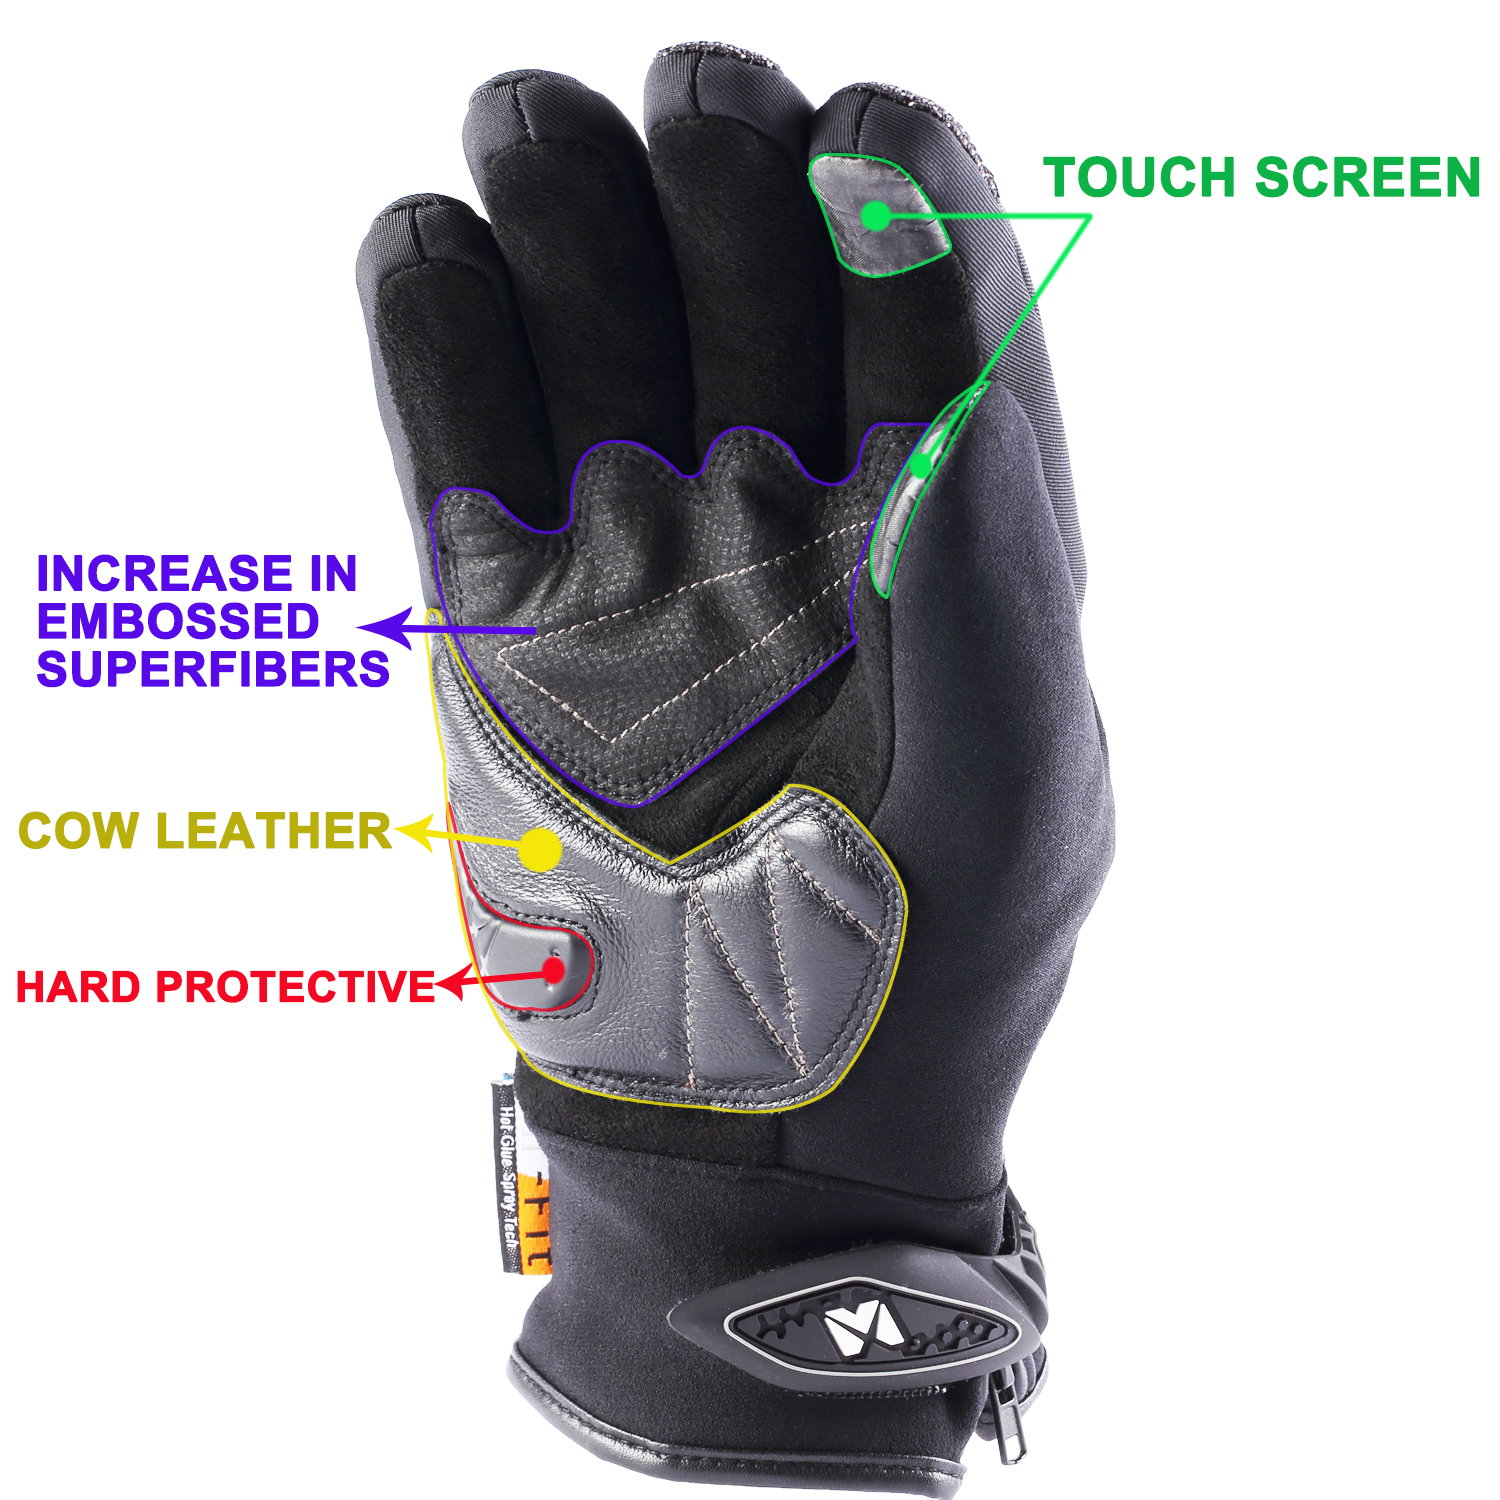 HTB1JJEUc8WD3KVjSZKPq6yp7FXaS - MASONTEX Winter Motorcycle Gloves Thermal Waterproof Men Women Outdoor Windproof Warm Moto Touchscreen Riding Gloves